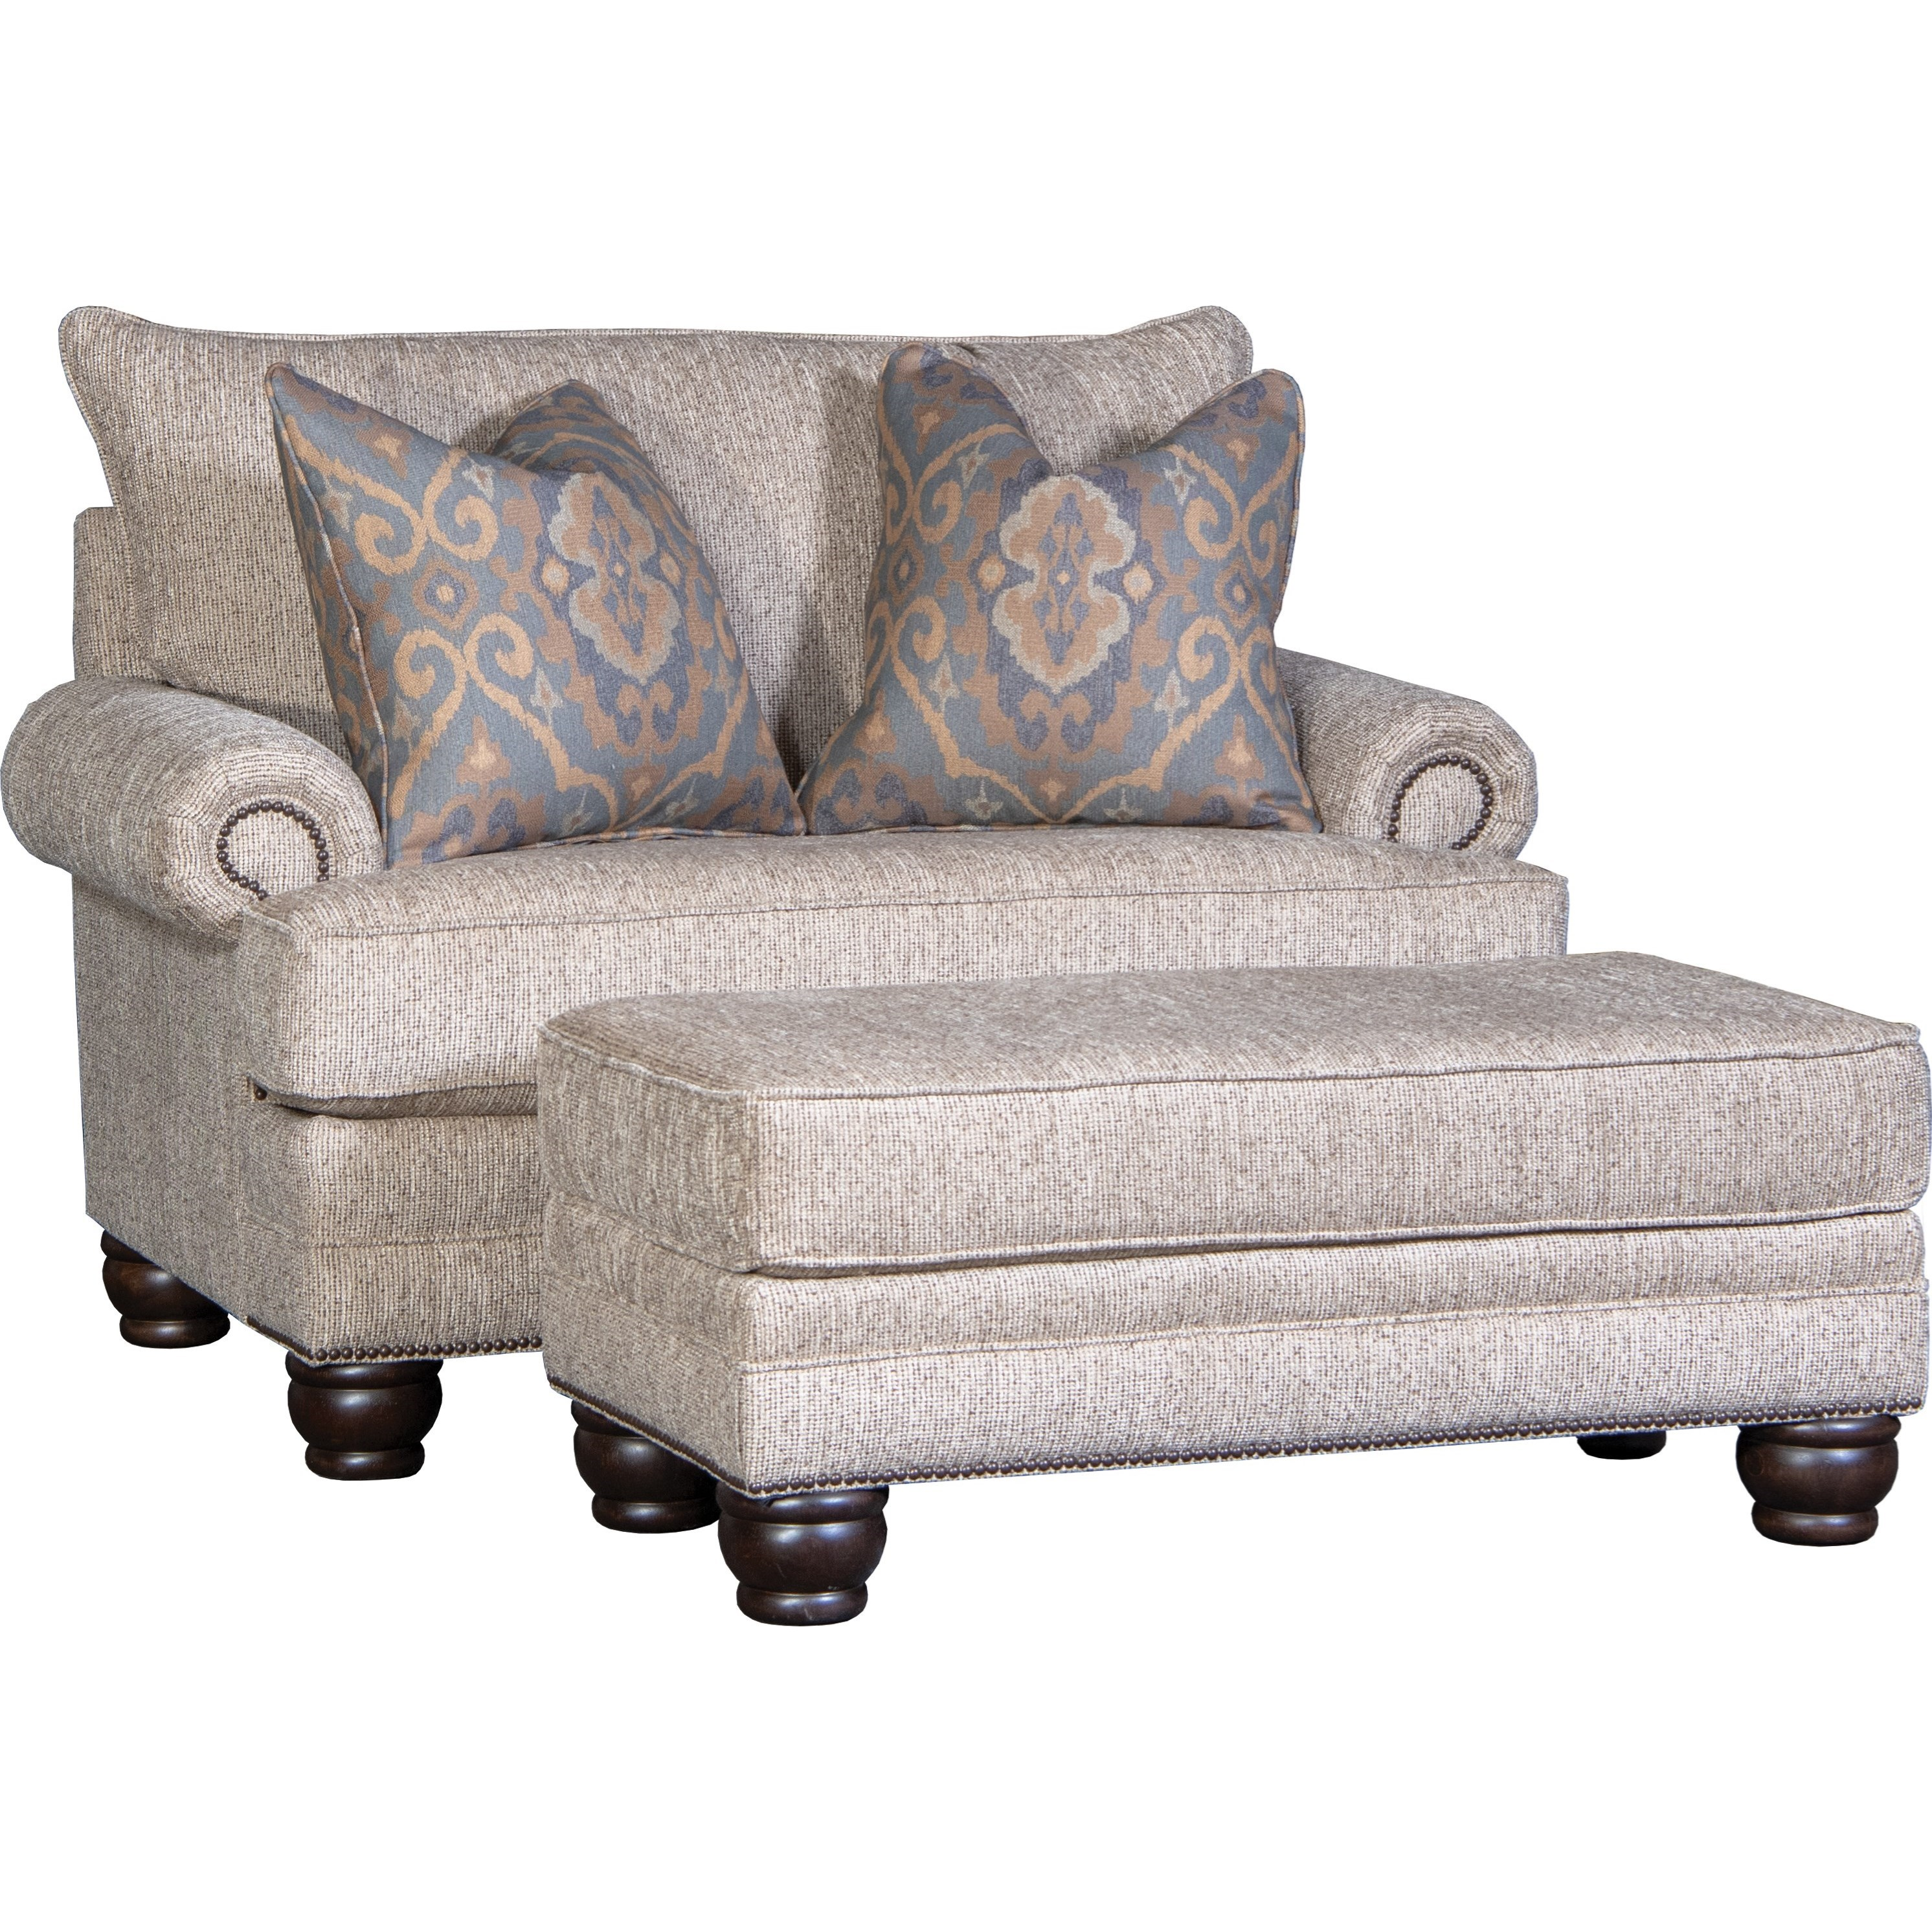 mayo 5260 traditional oversized chair